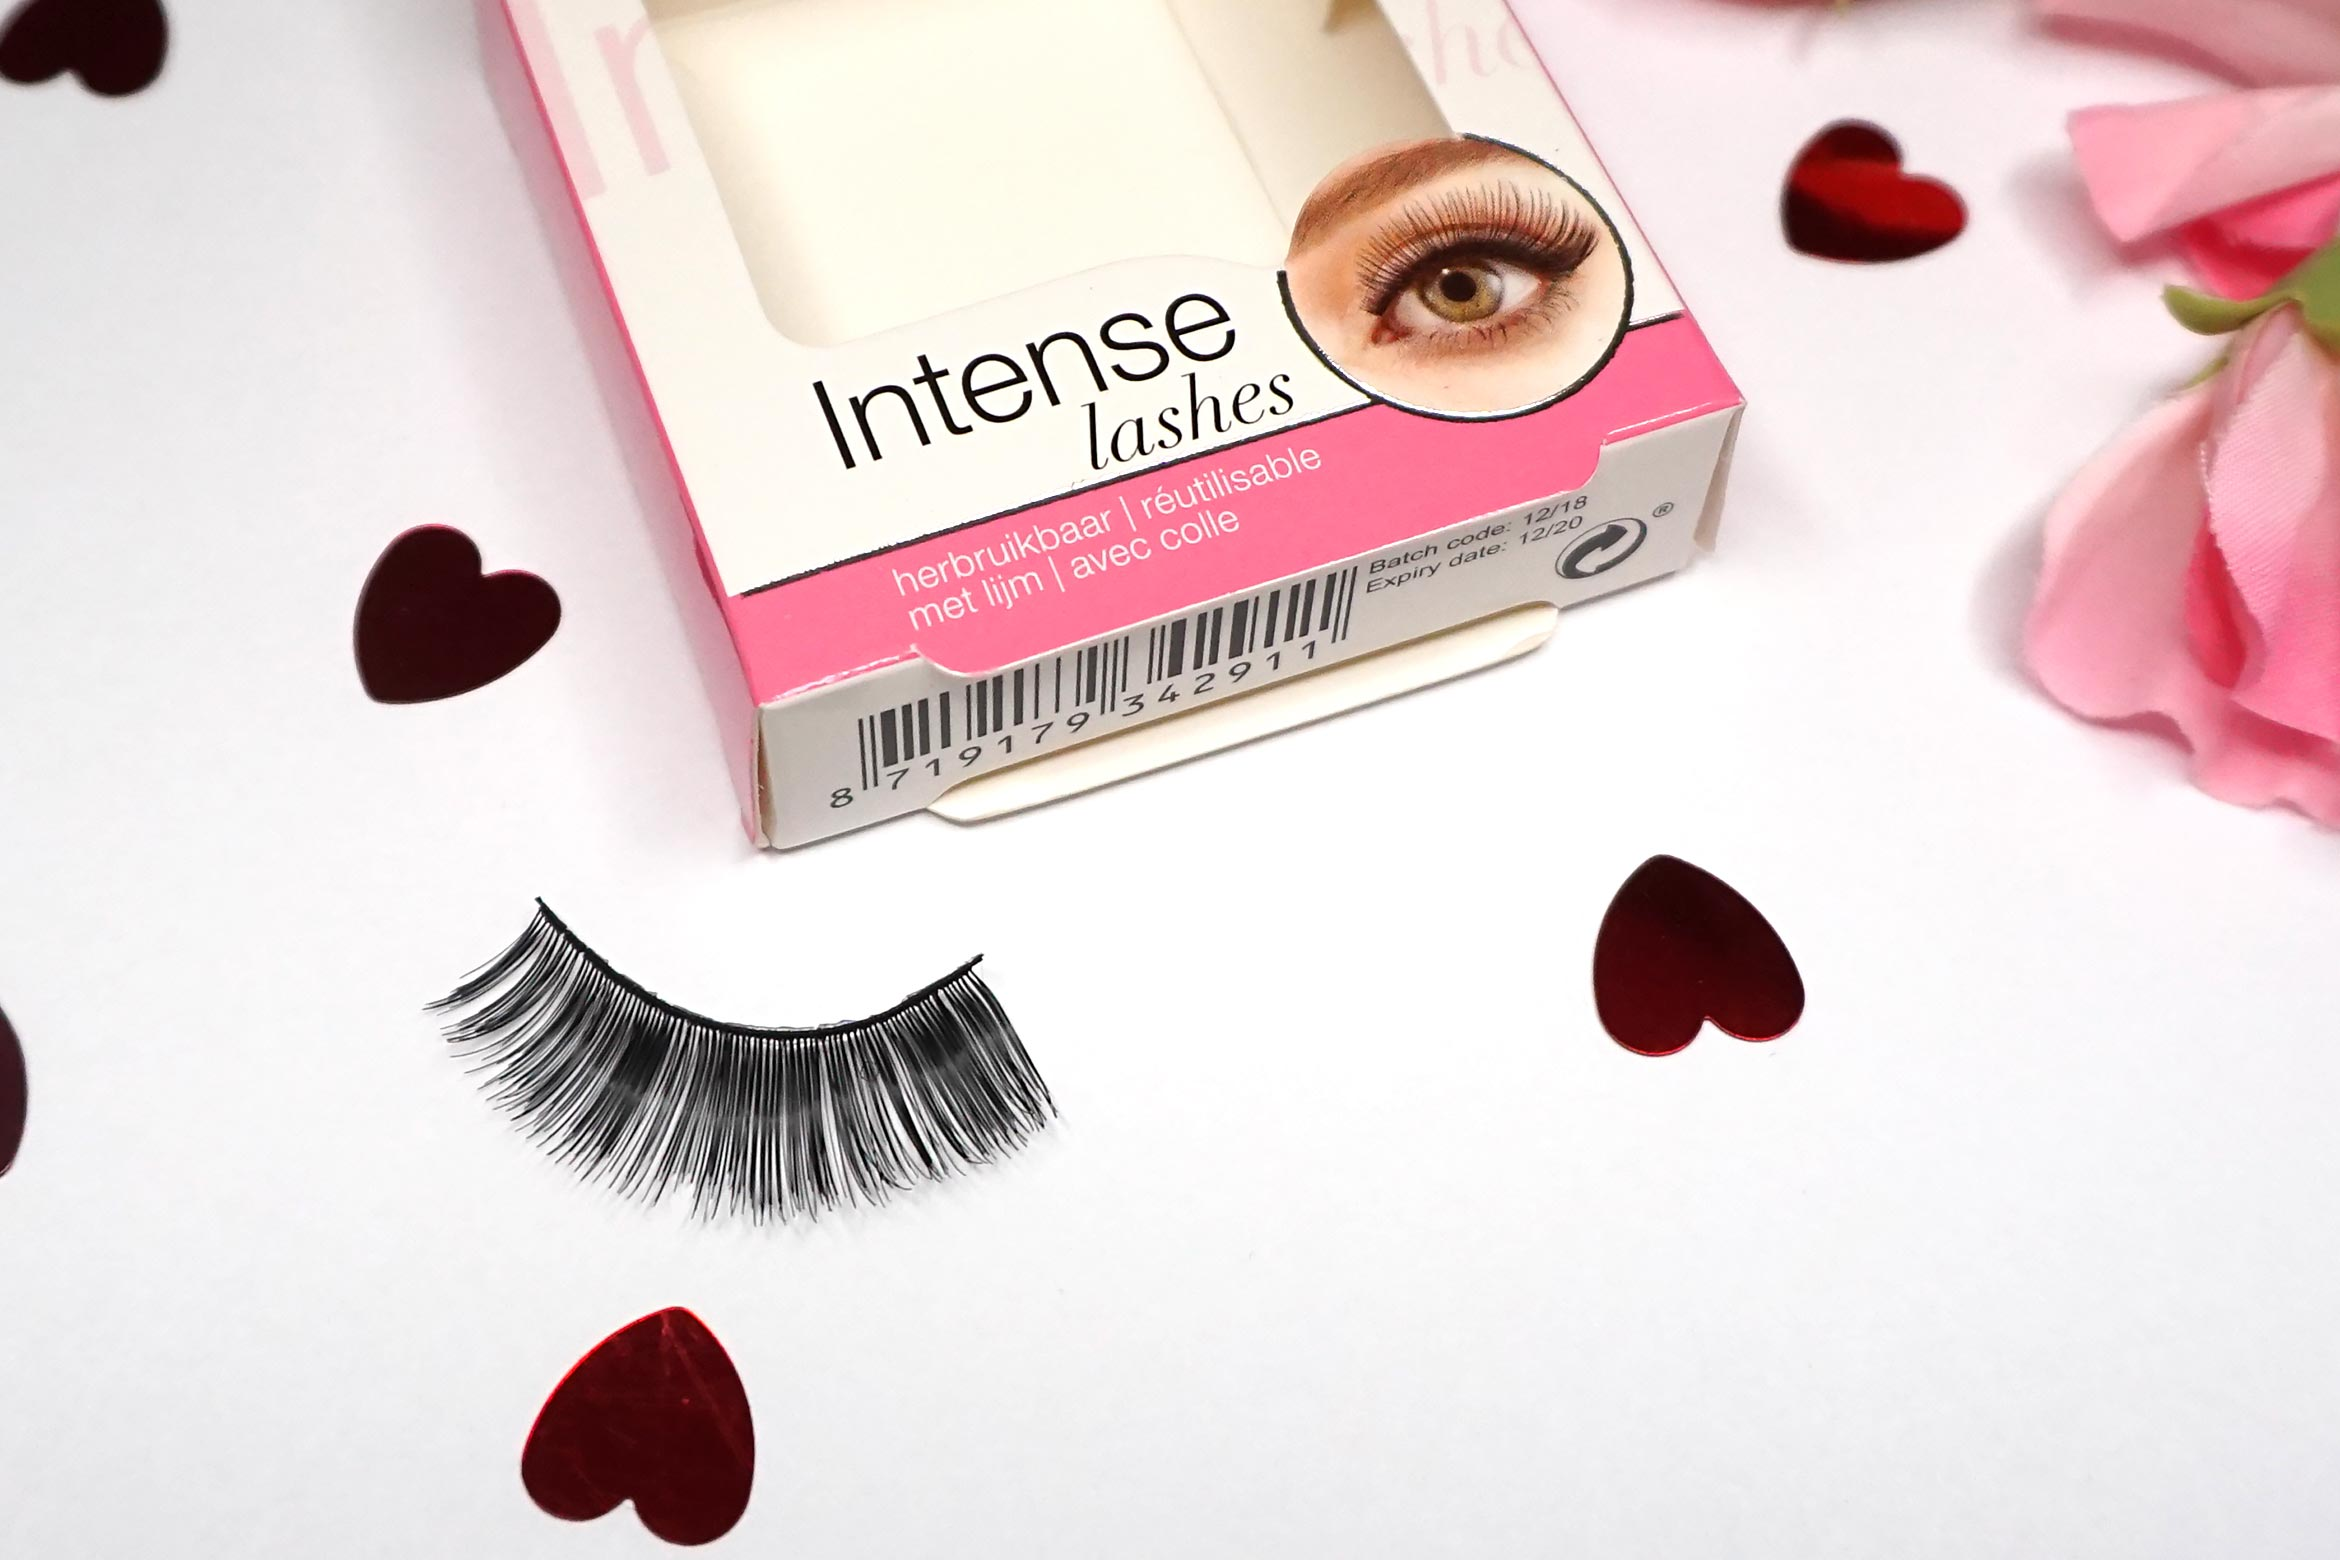 kruidvat-intense-lashes-review-1